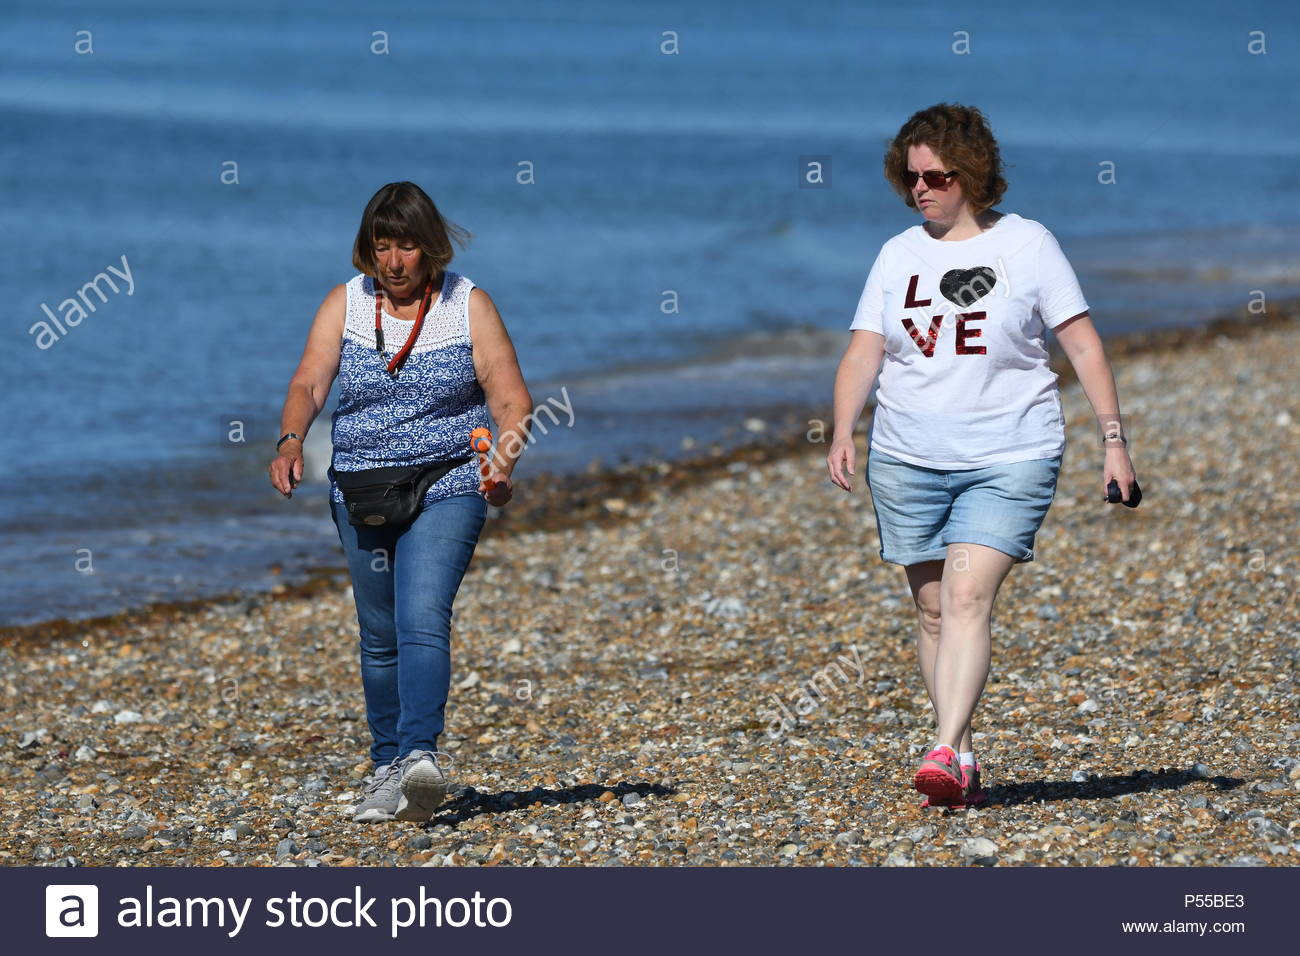 Littlehampton, UK. Monday 25th June 2018. People enjoying the sunshine on the beach on a very warm and sunny morning in Littlehampton, on the South Coast. Credit: Geoff Smith / Alamy Live News. Stock Photo